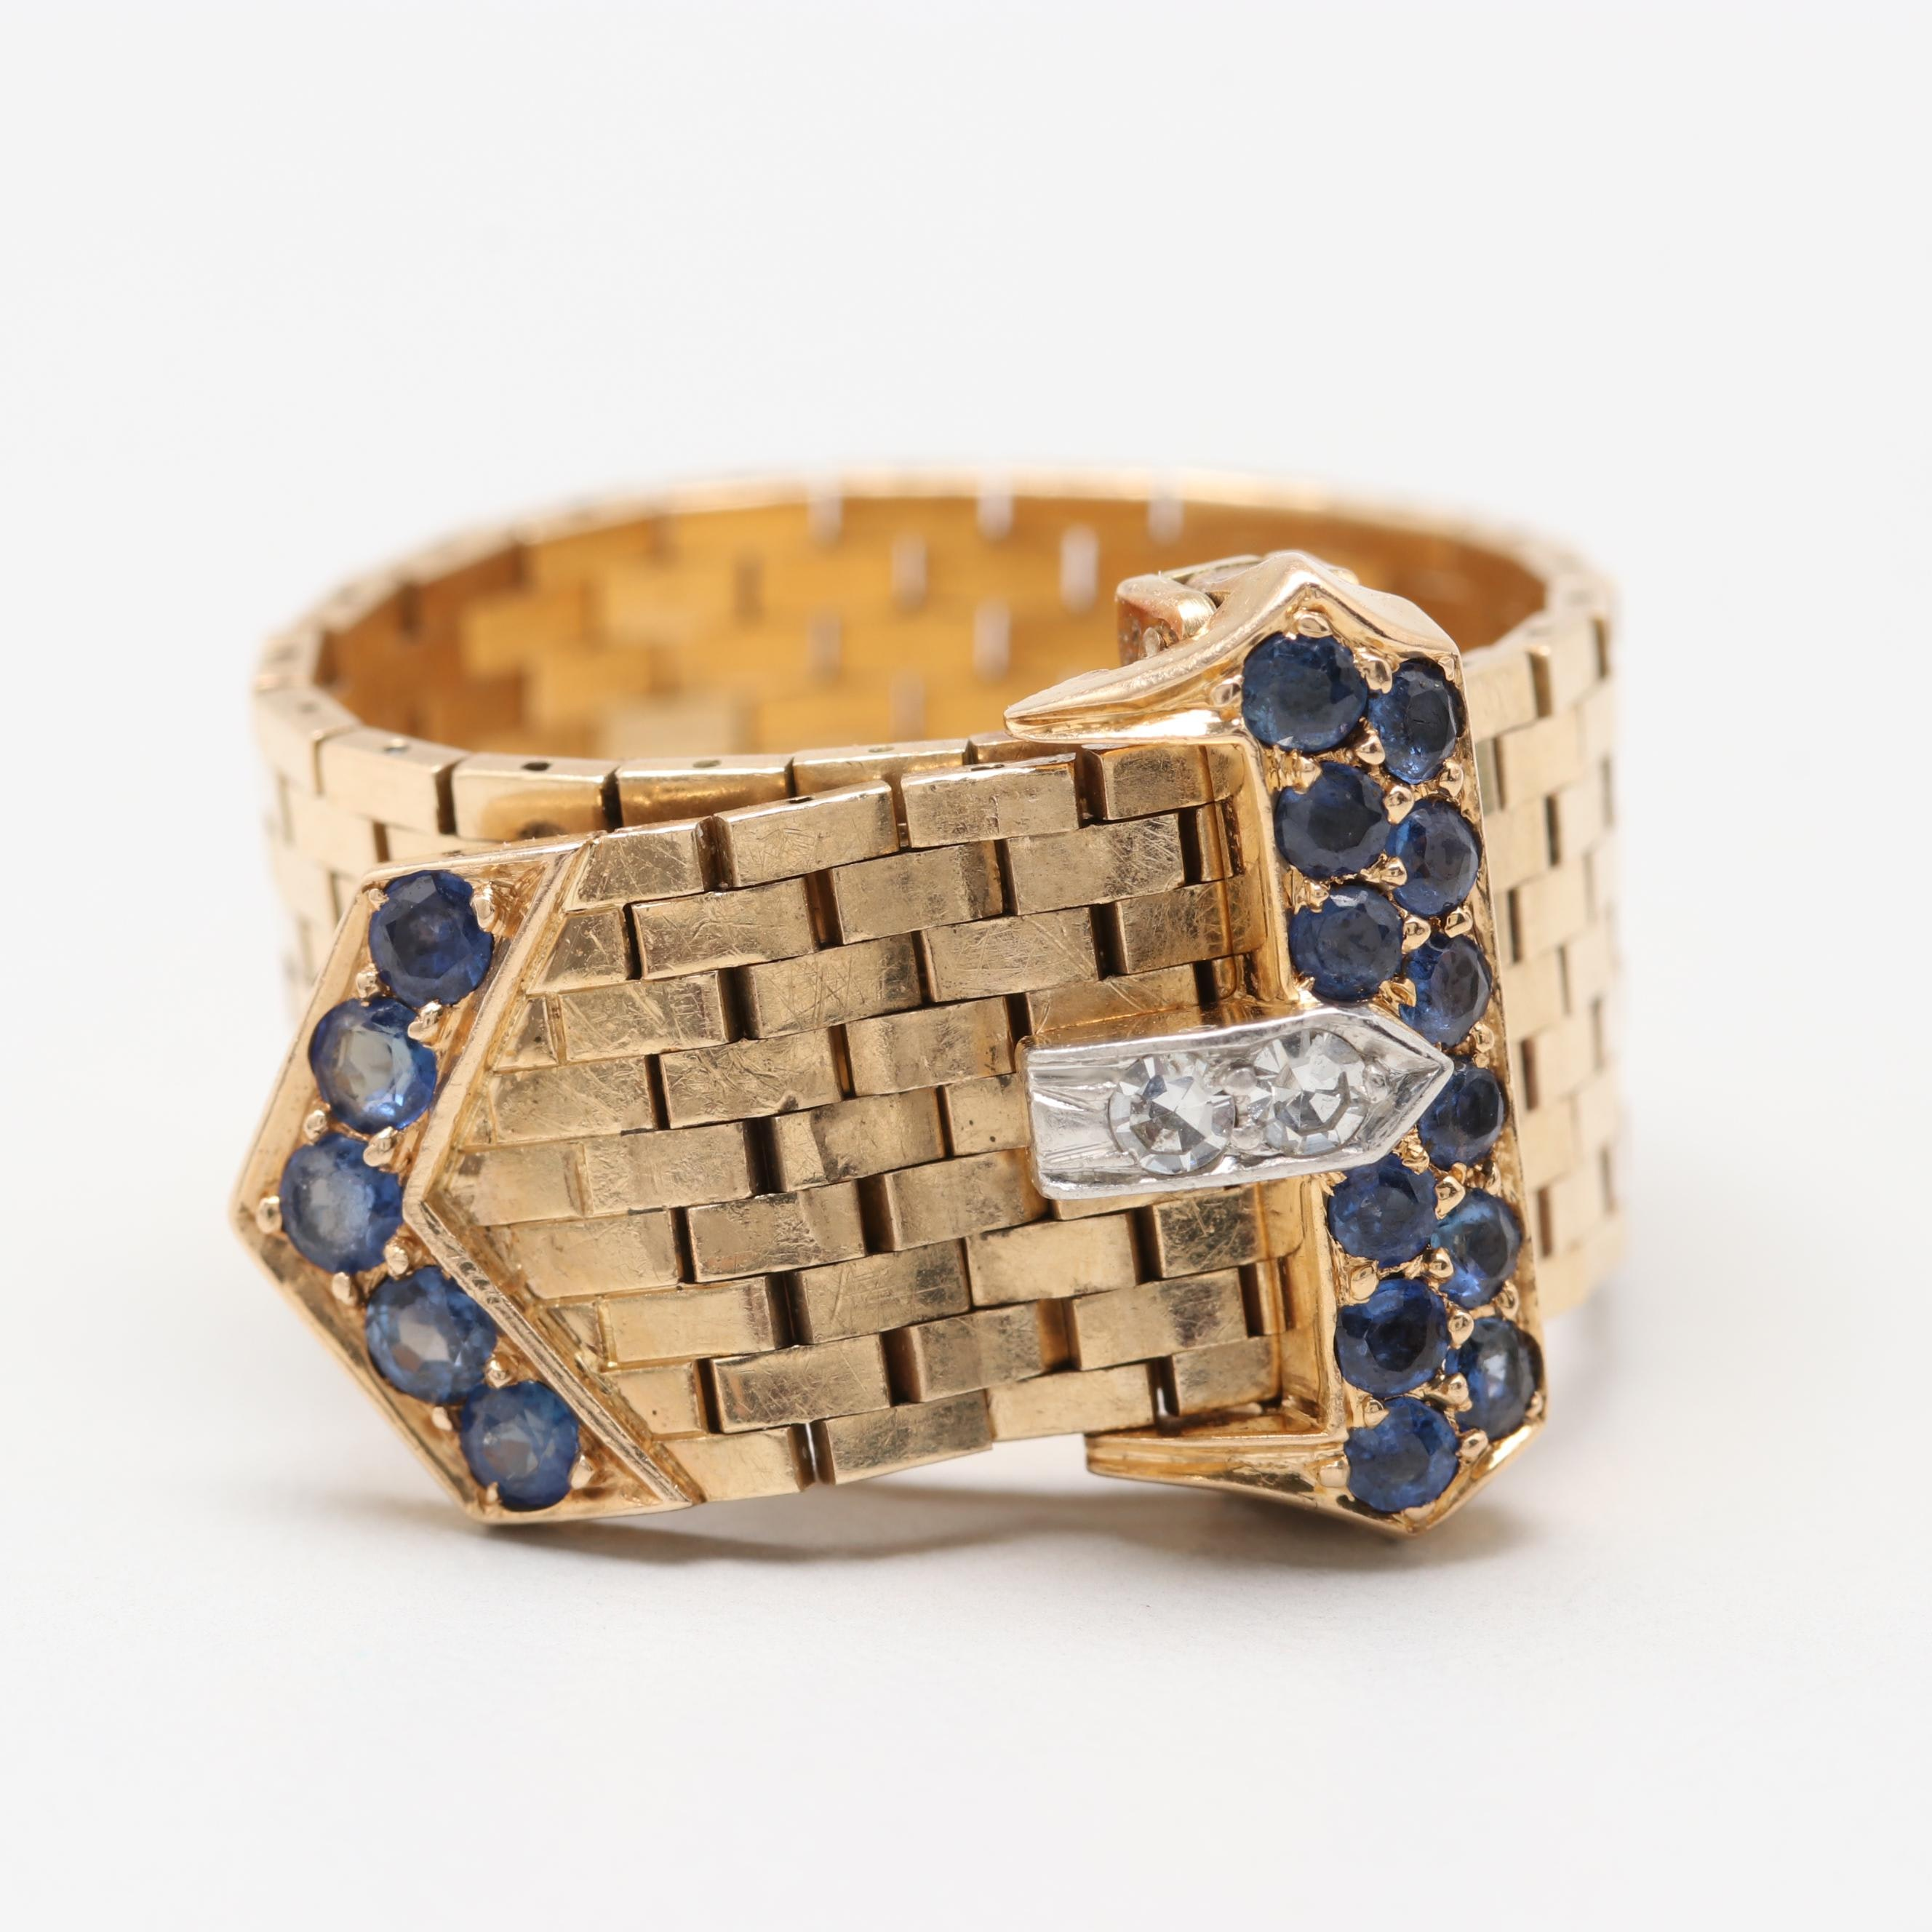 Retro 14K Yellow Gold Diamond and Sapphire Buckle Ring with Platinum Accents